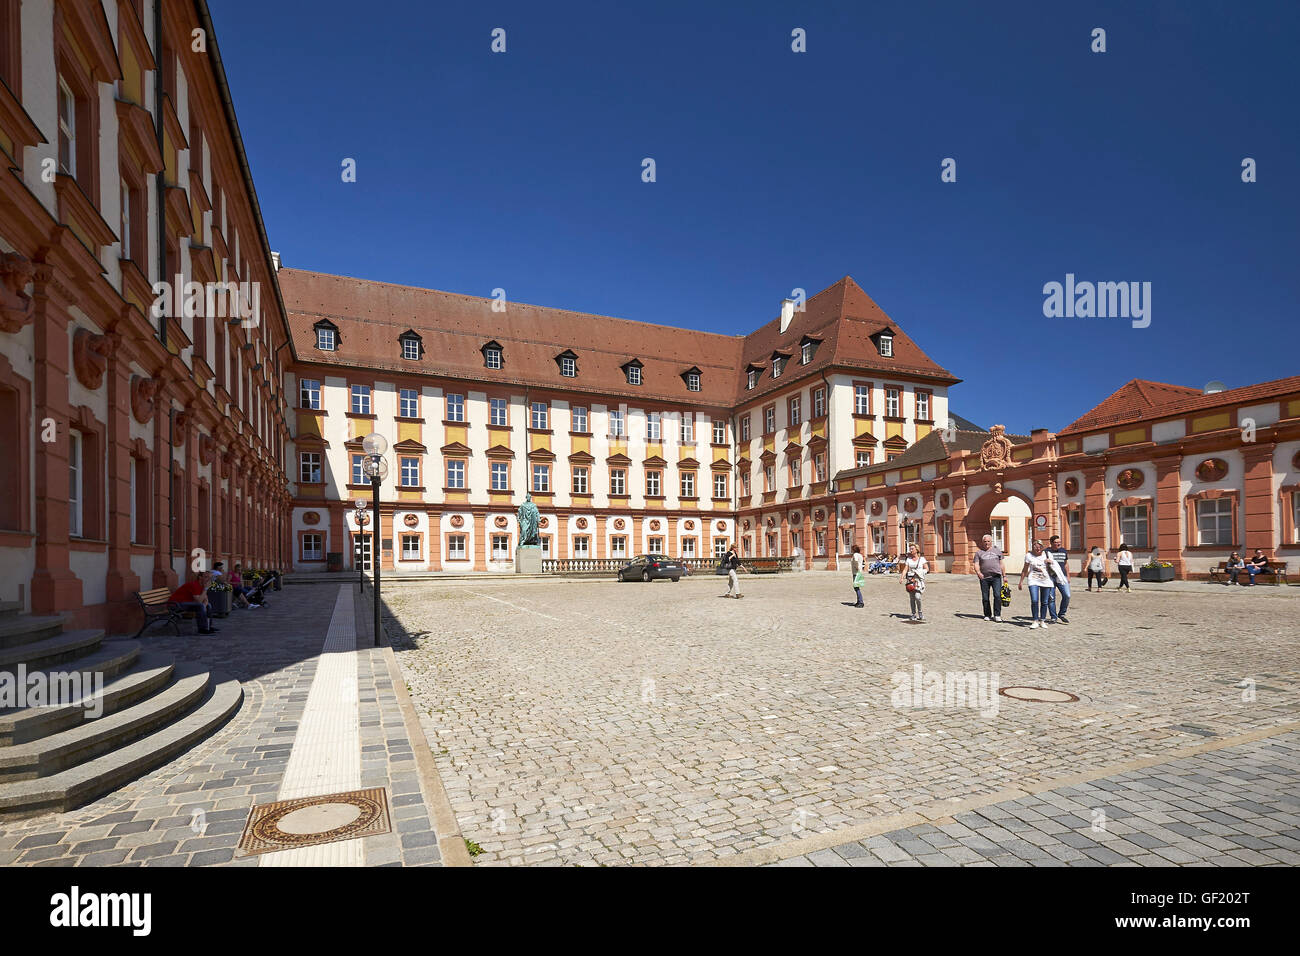 Old Palace in Bayreuth, Germany - Stock Image